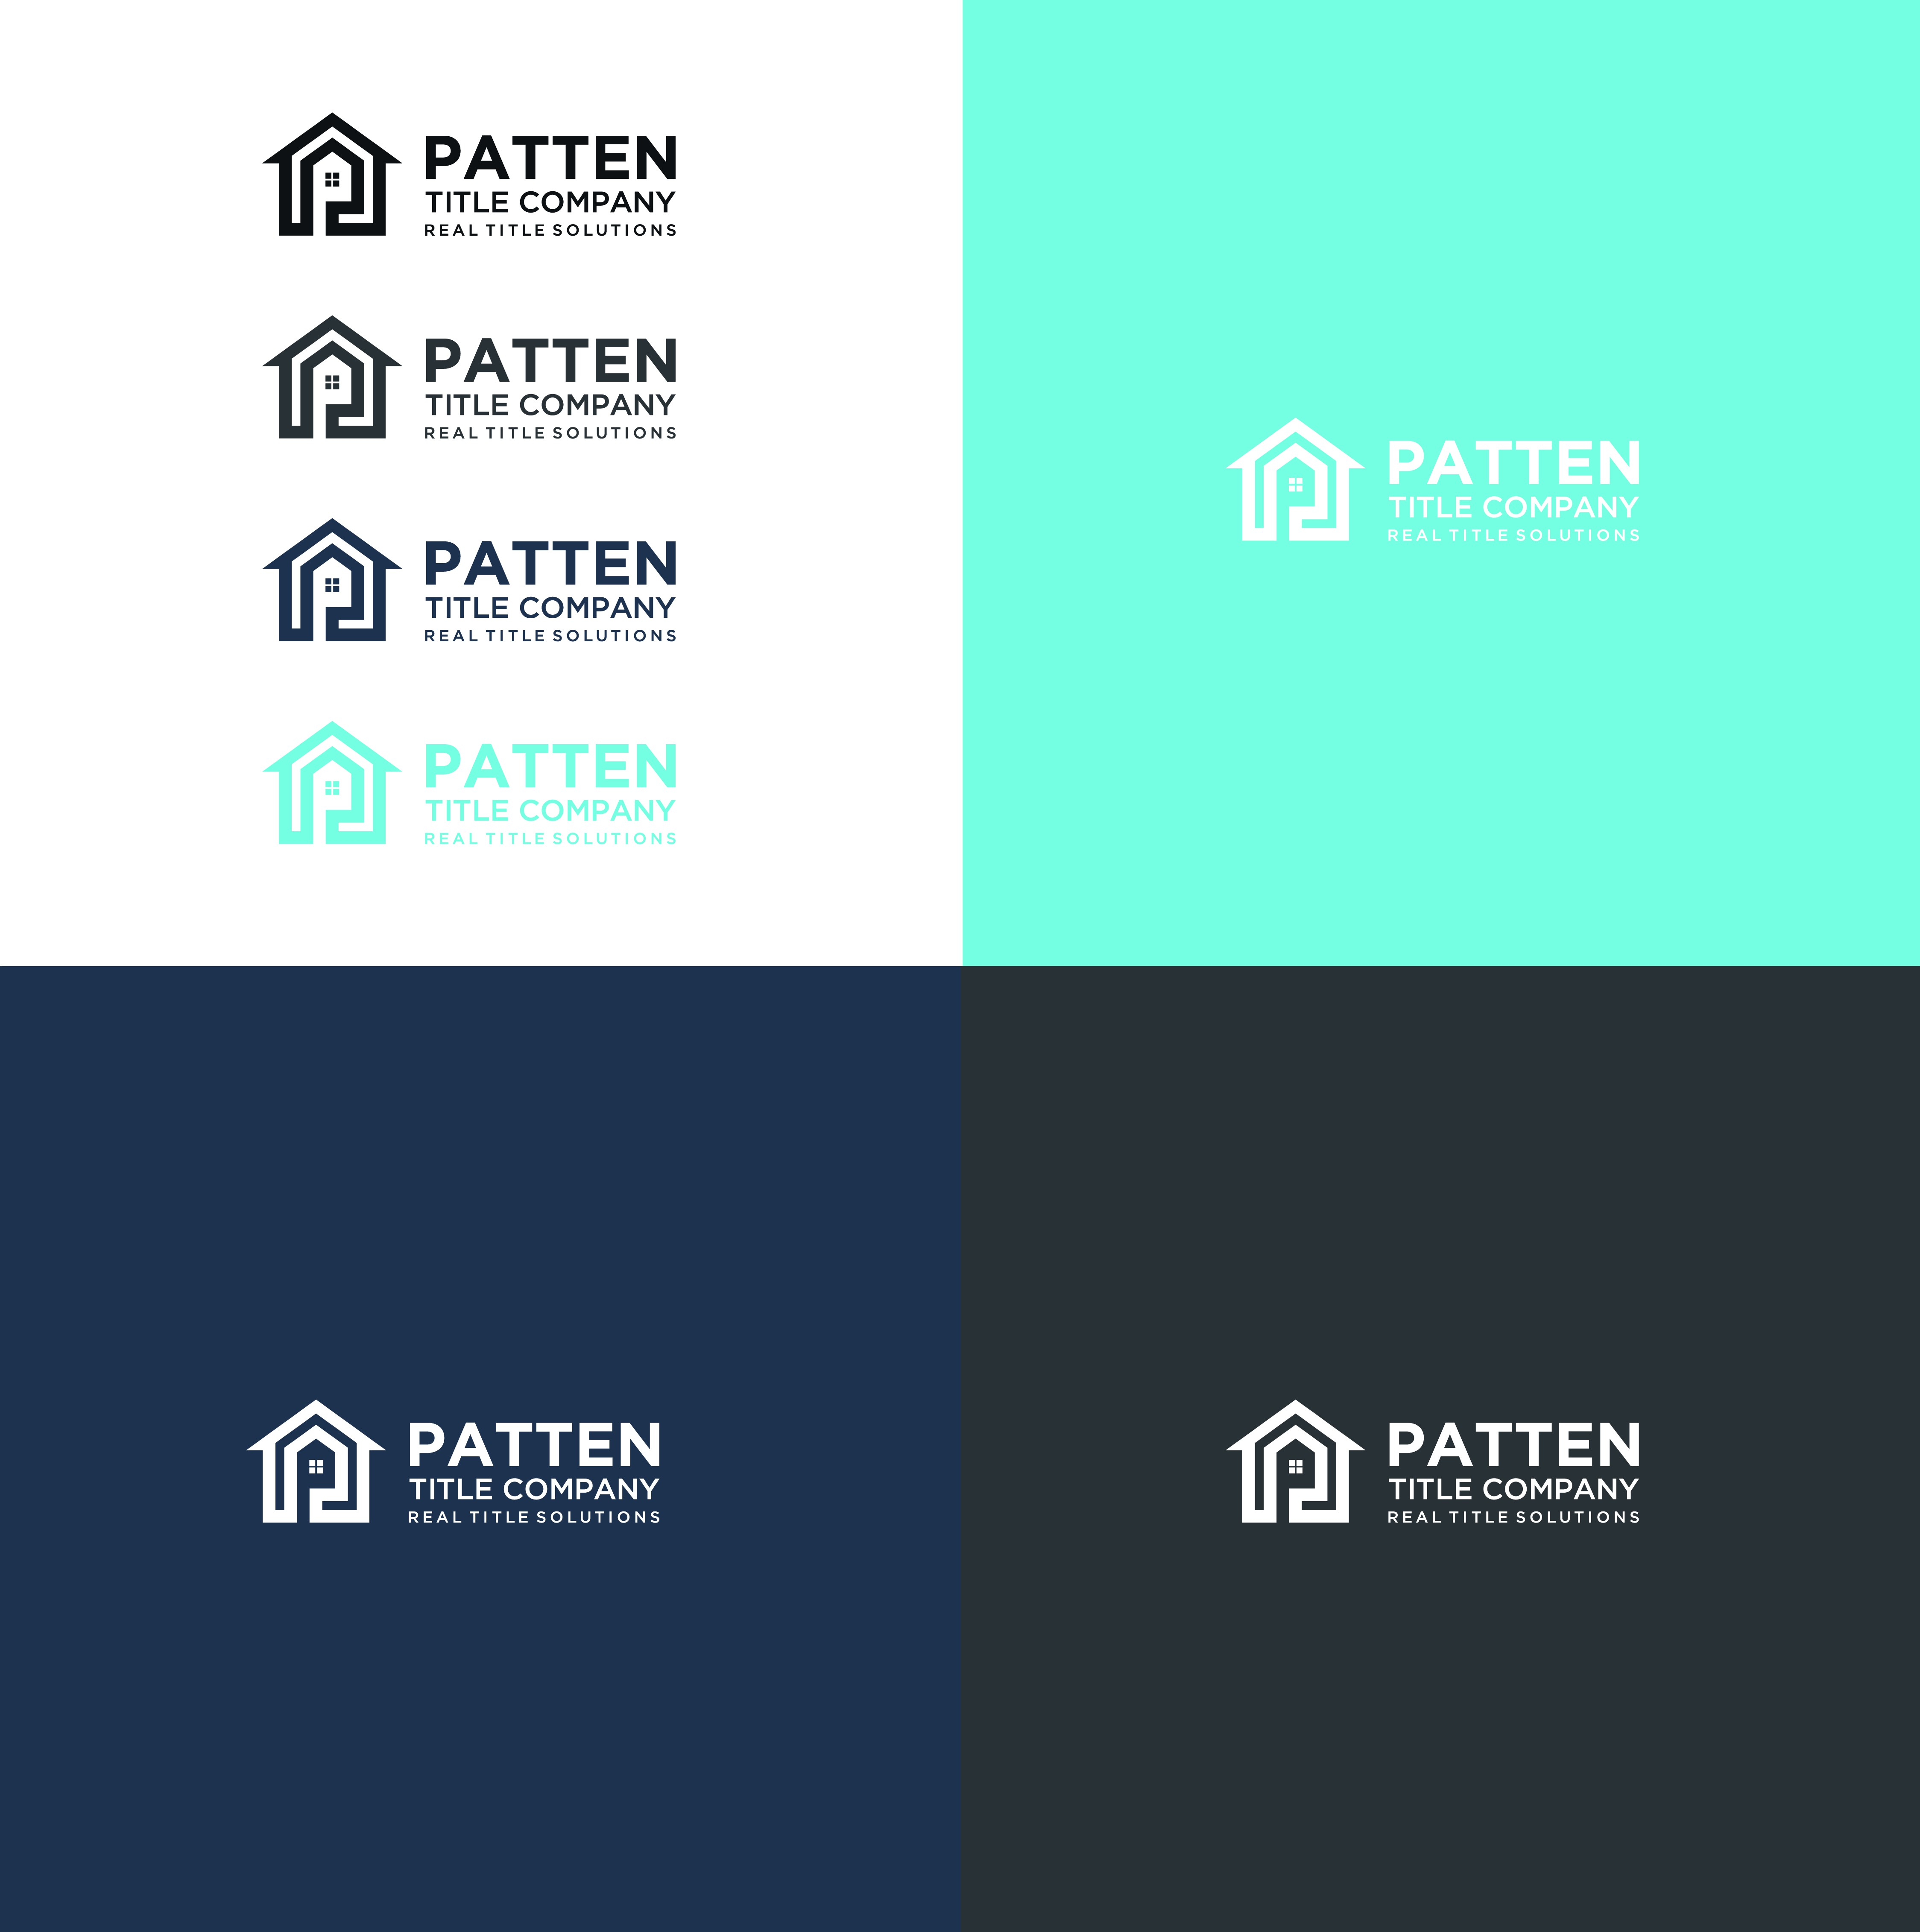 Logo design for real estate company rebrand